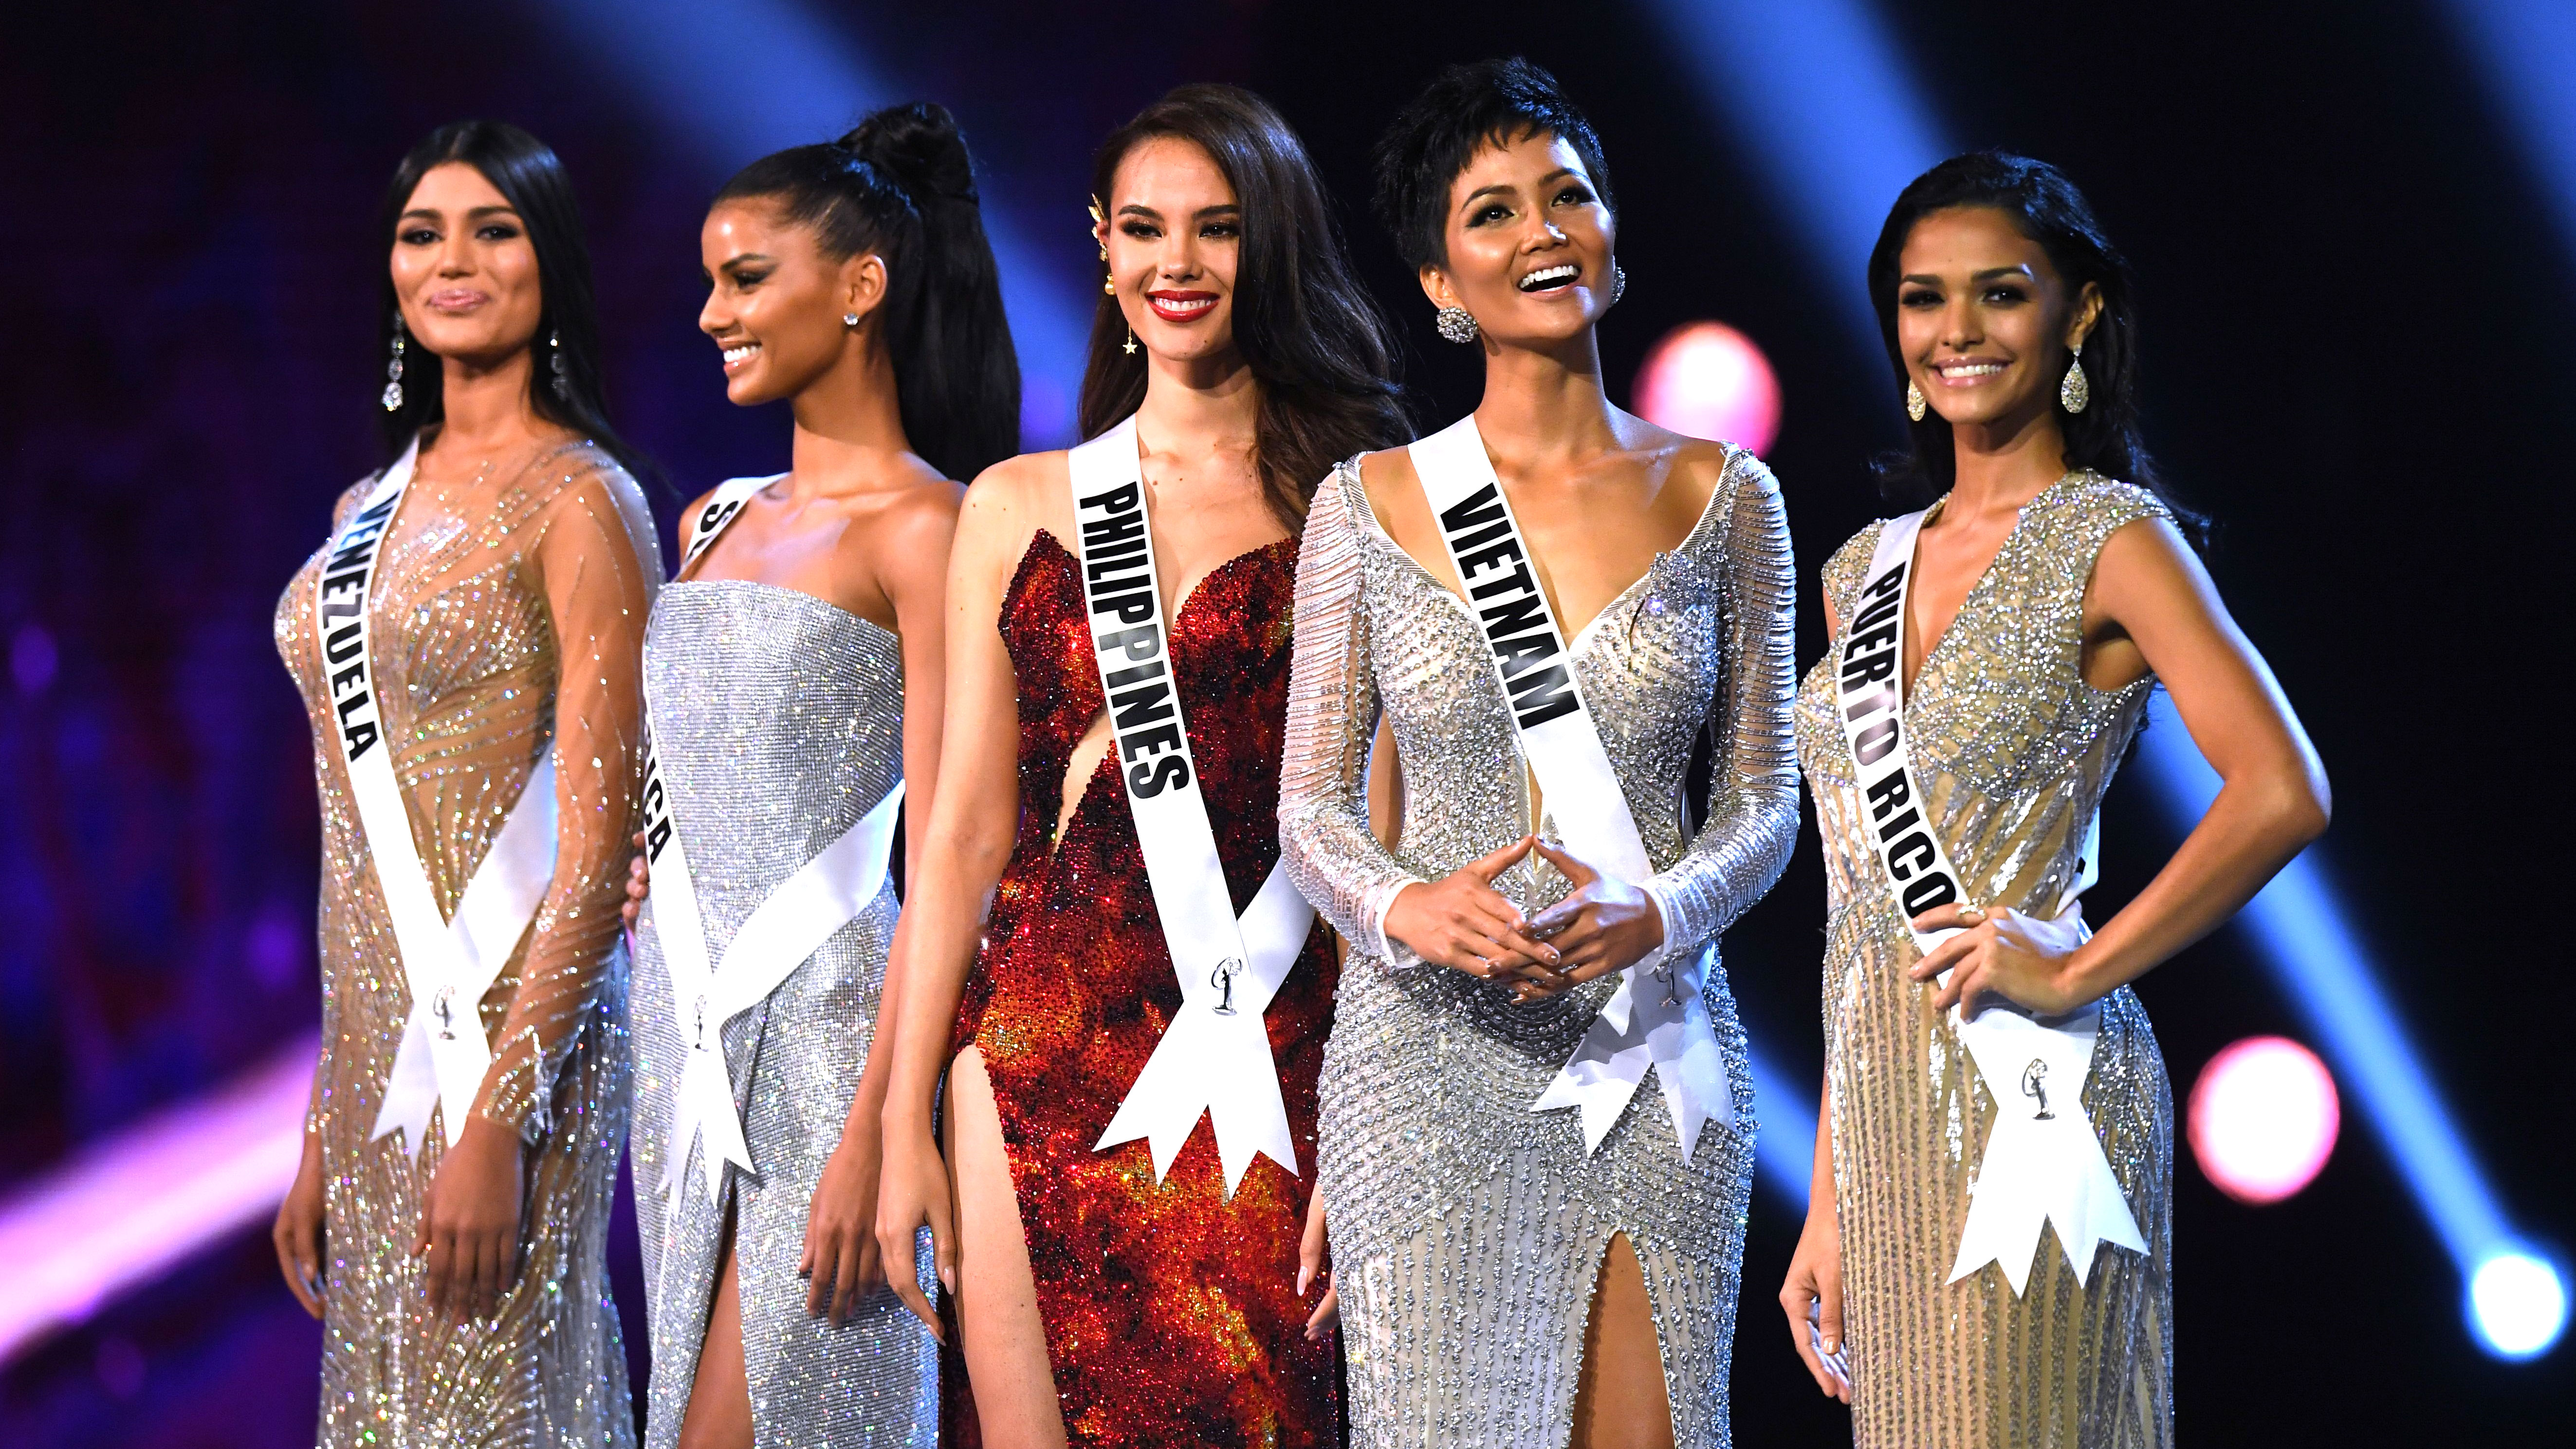 Miss Universe 2018: Top 10 Evening Gowns Competition